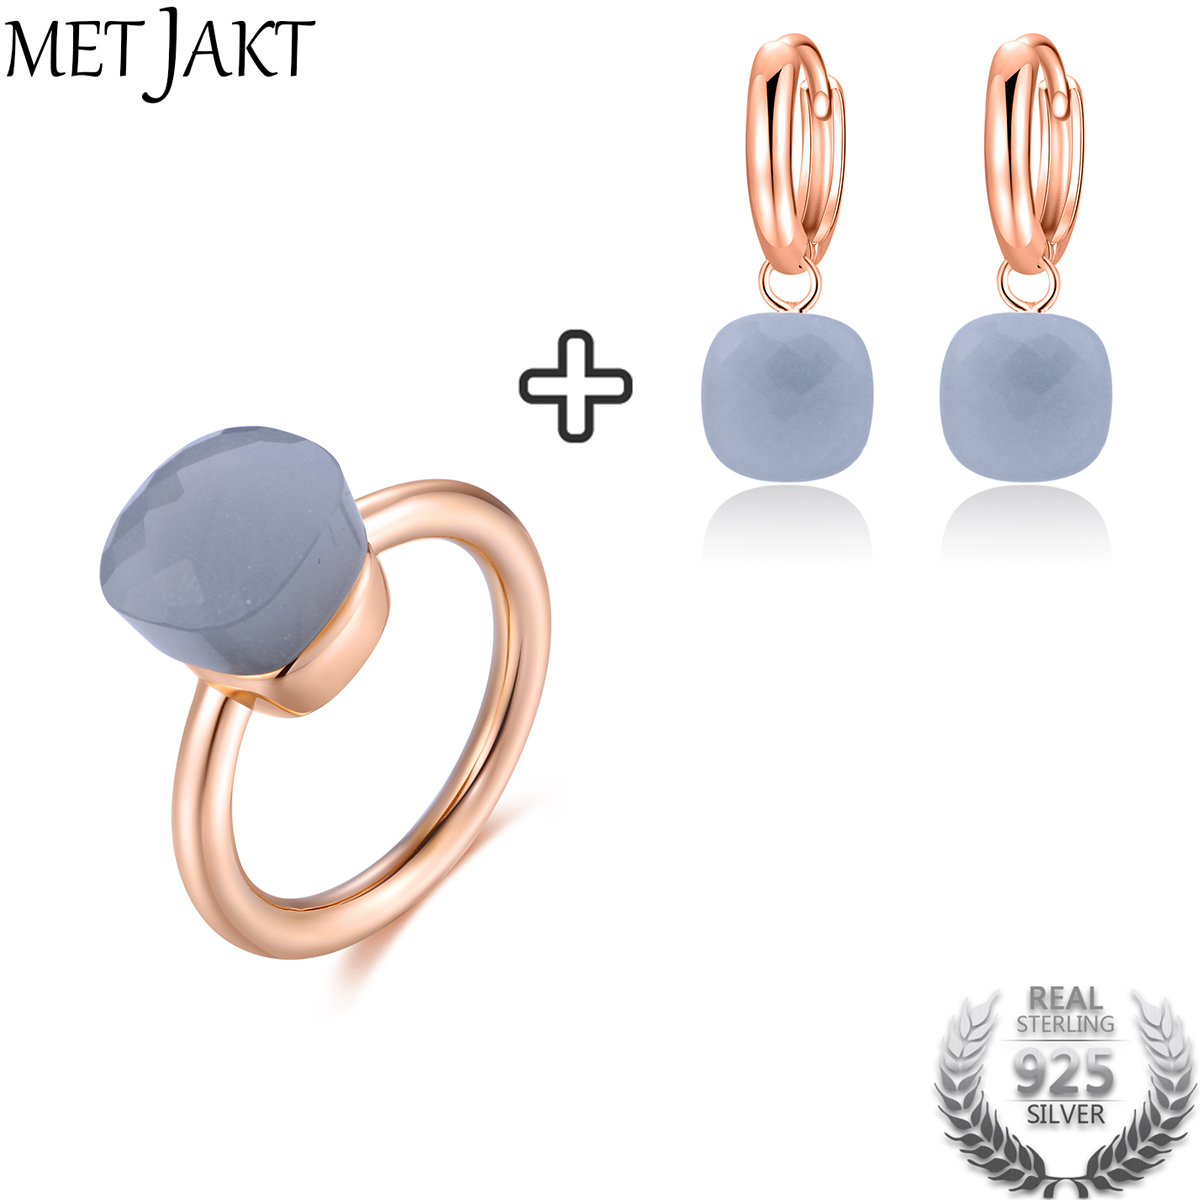 MetJakt Natural Gray Agate Earring Ring Sets 14K Rose Gold Color Jewelry Solid 925 Sterling Silver